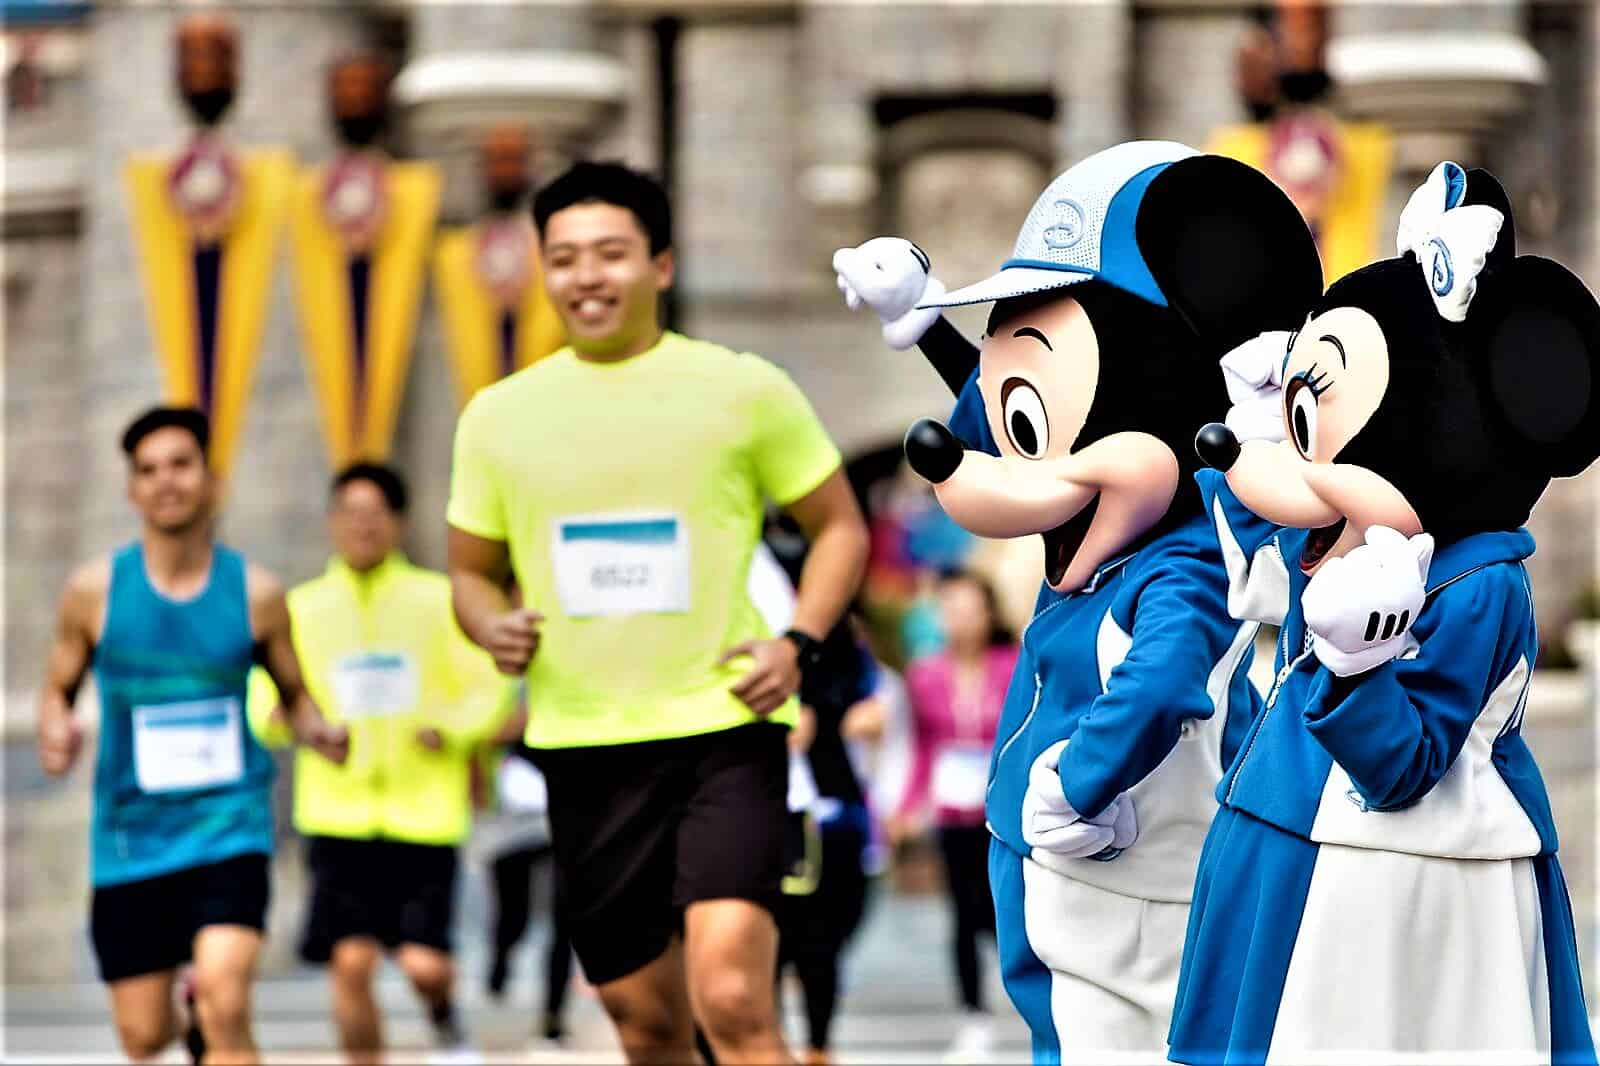 image-of-mickey-and-minnie-mouse-cheering-runners-at-10K-disneyland-marathon